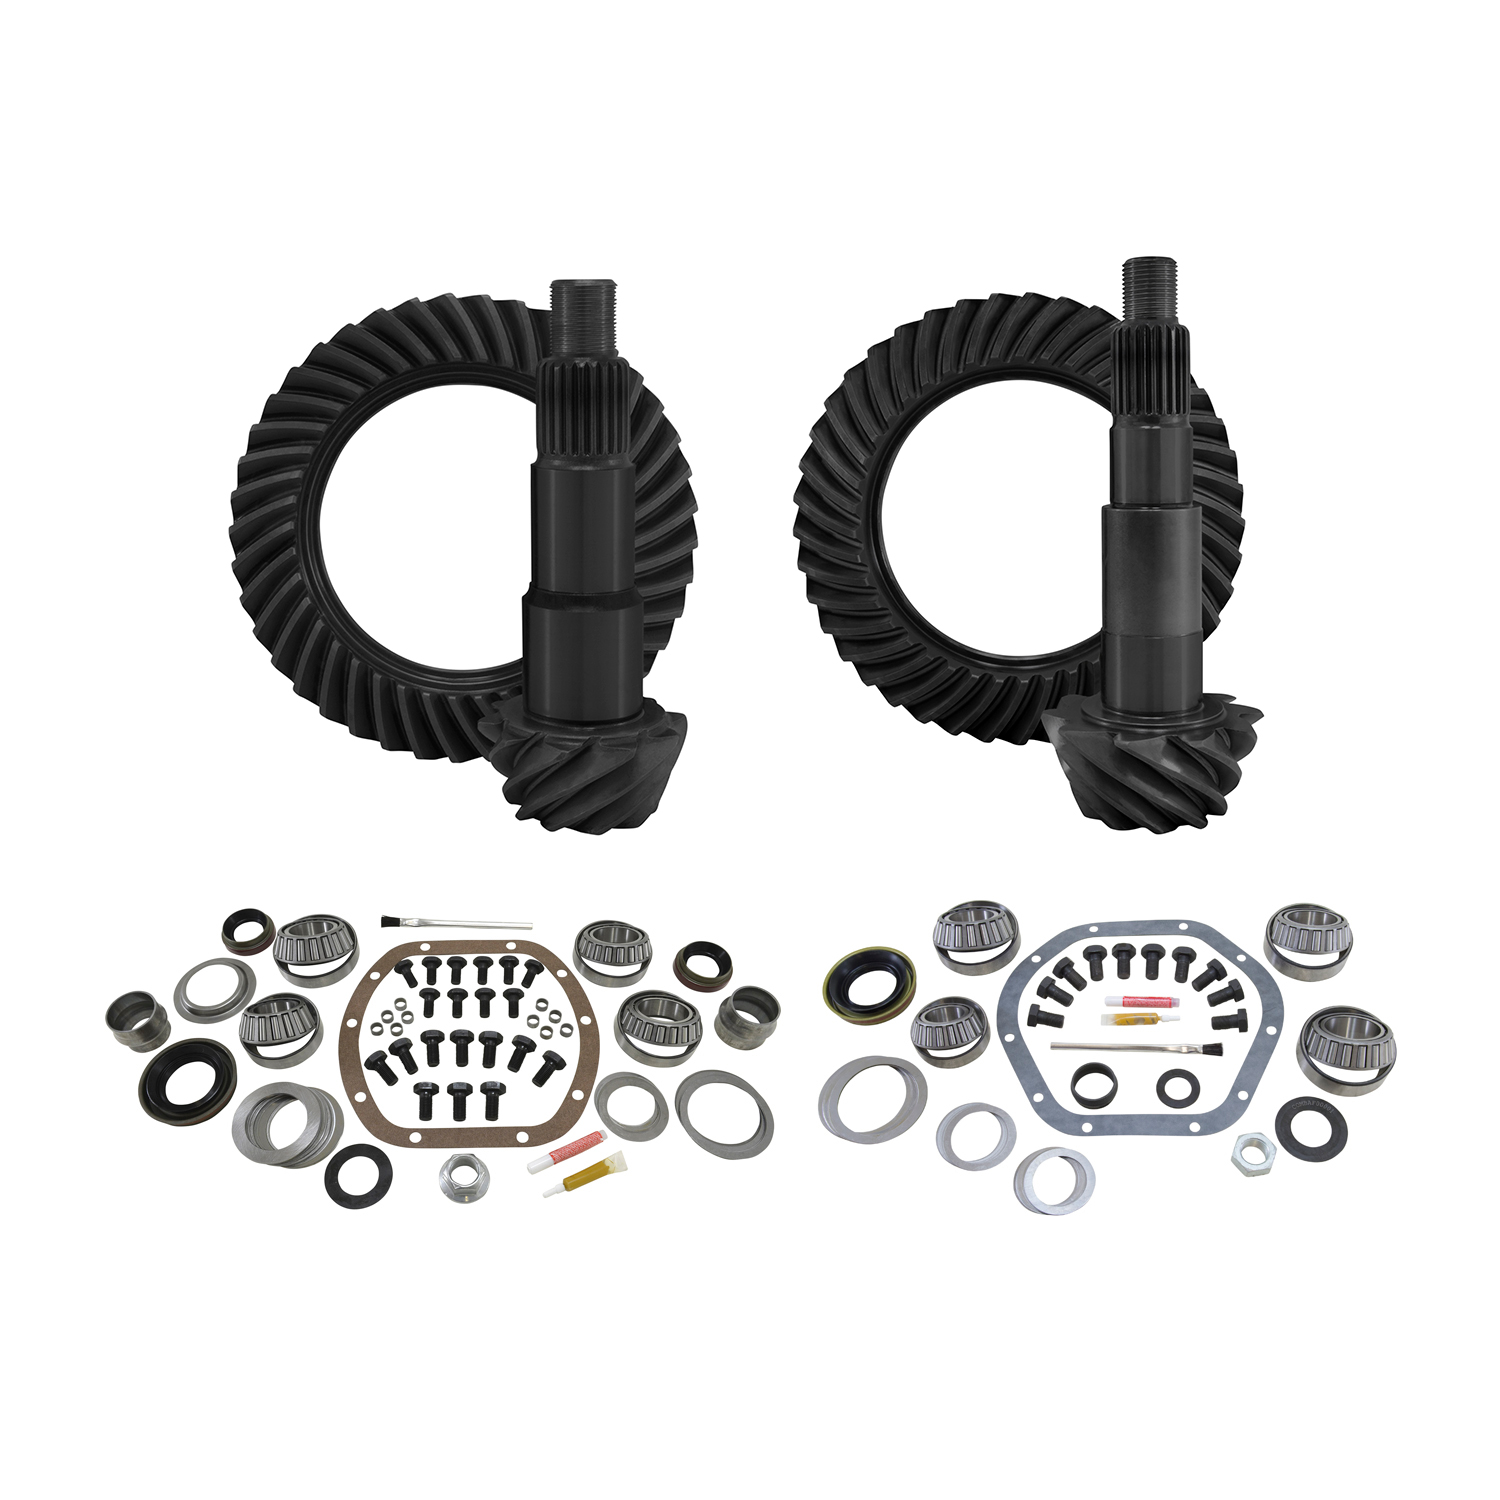 YGK012 - Yukon Gear & Install Kit package for Jeep JK non-Rubicon, 4.56 ratio